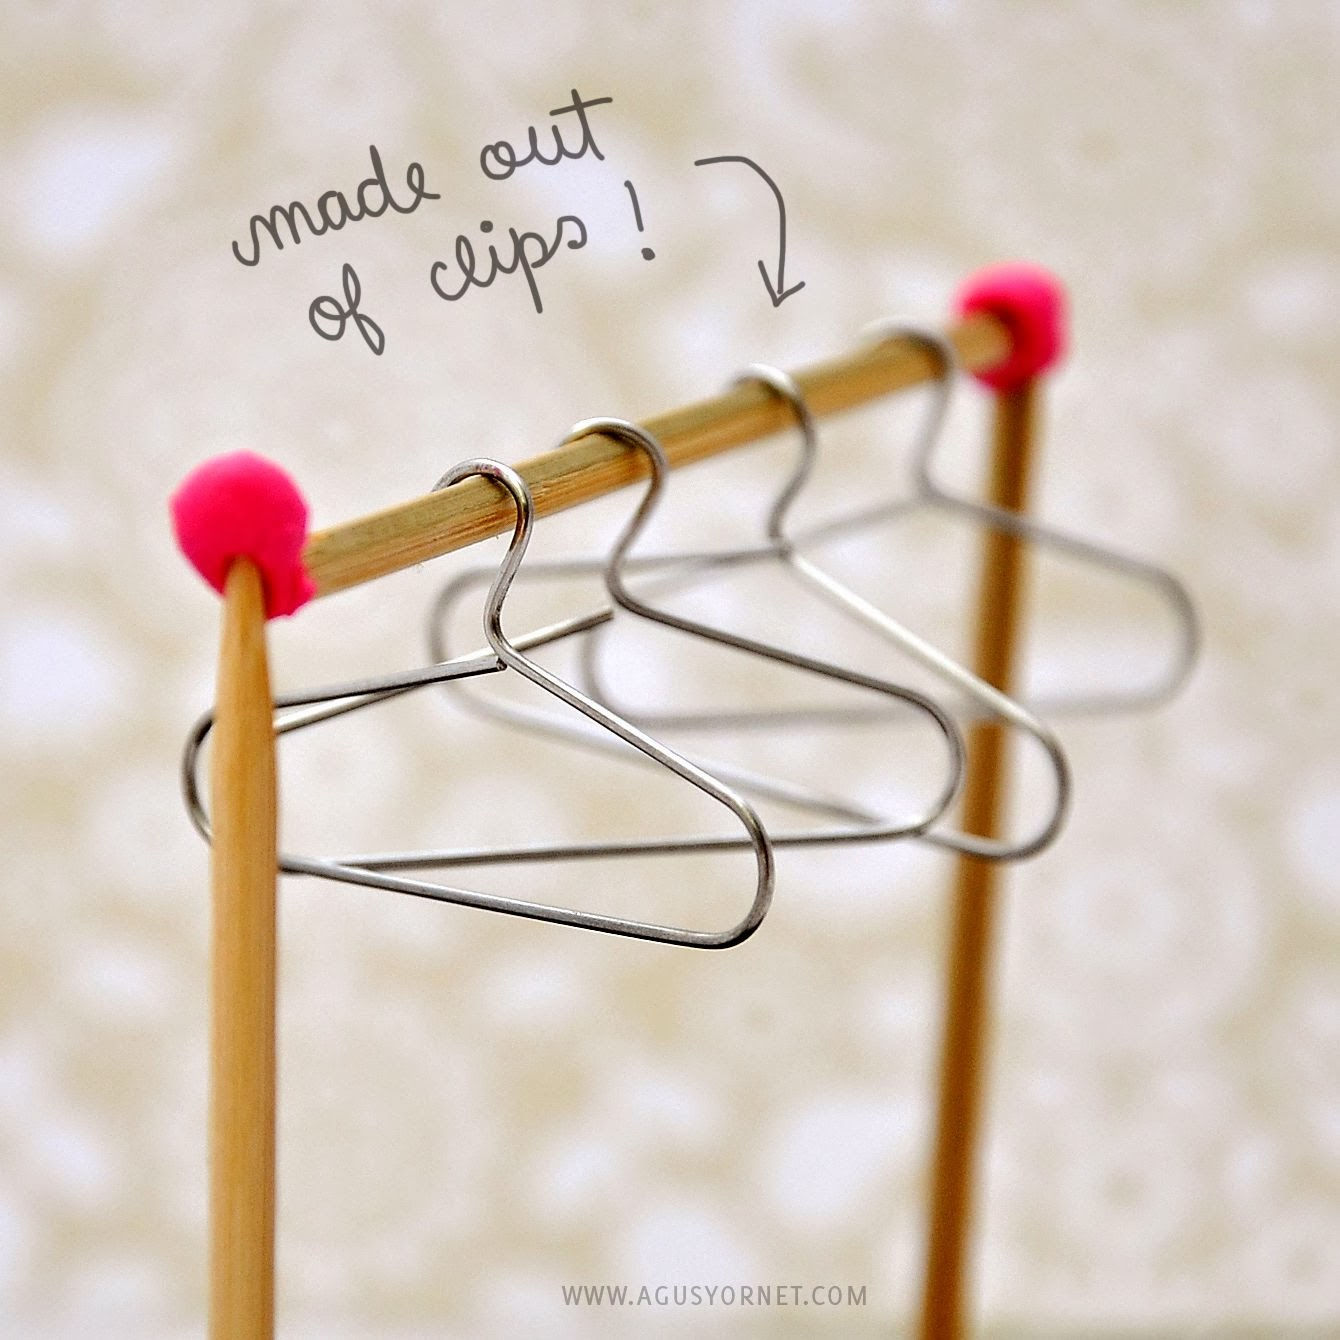 Diy from paper clips to mini hangers agus yornet blog for Things you can make with paper clips